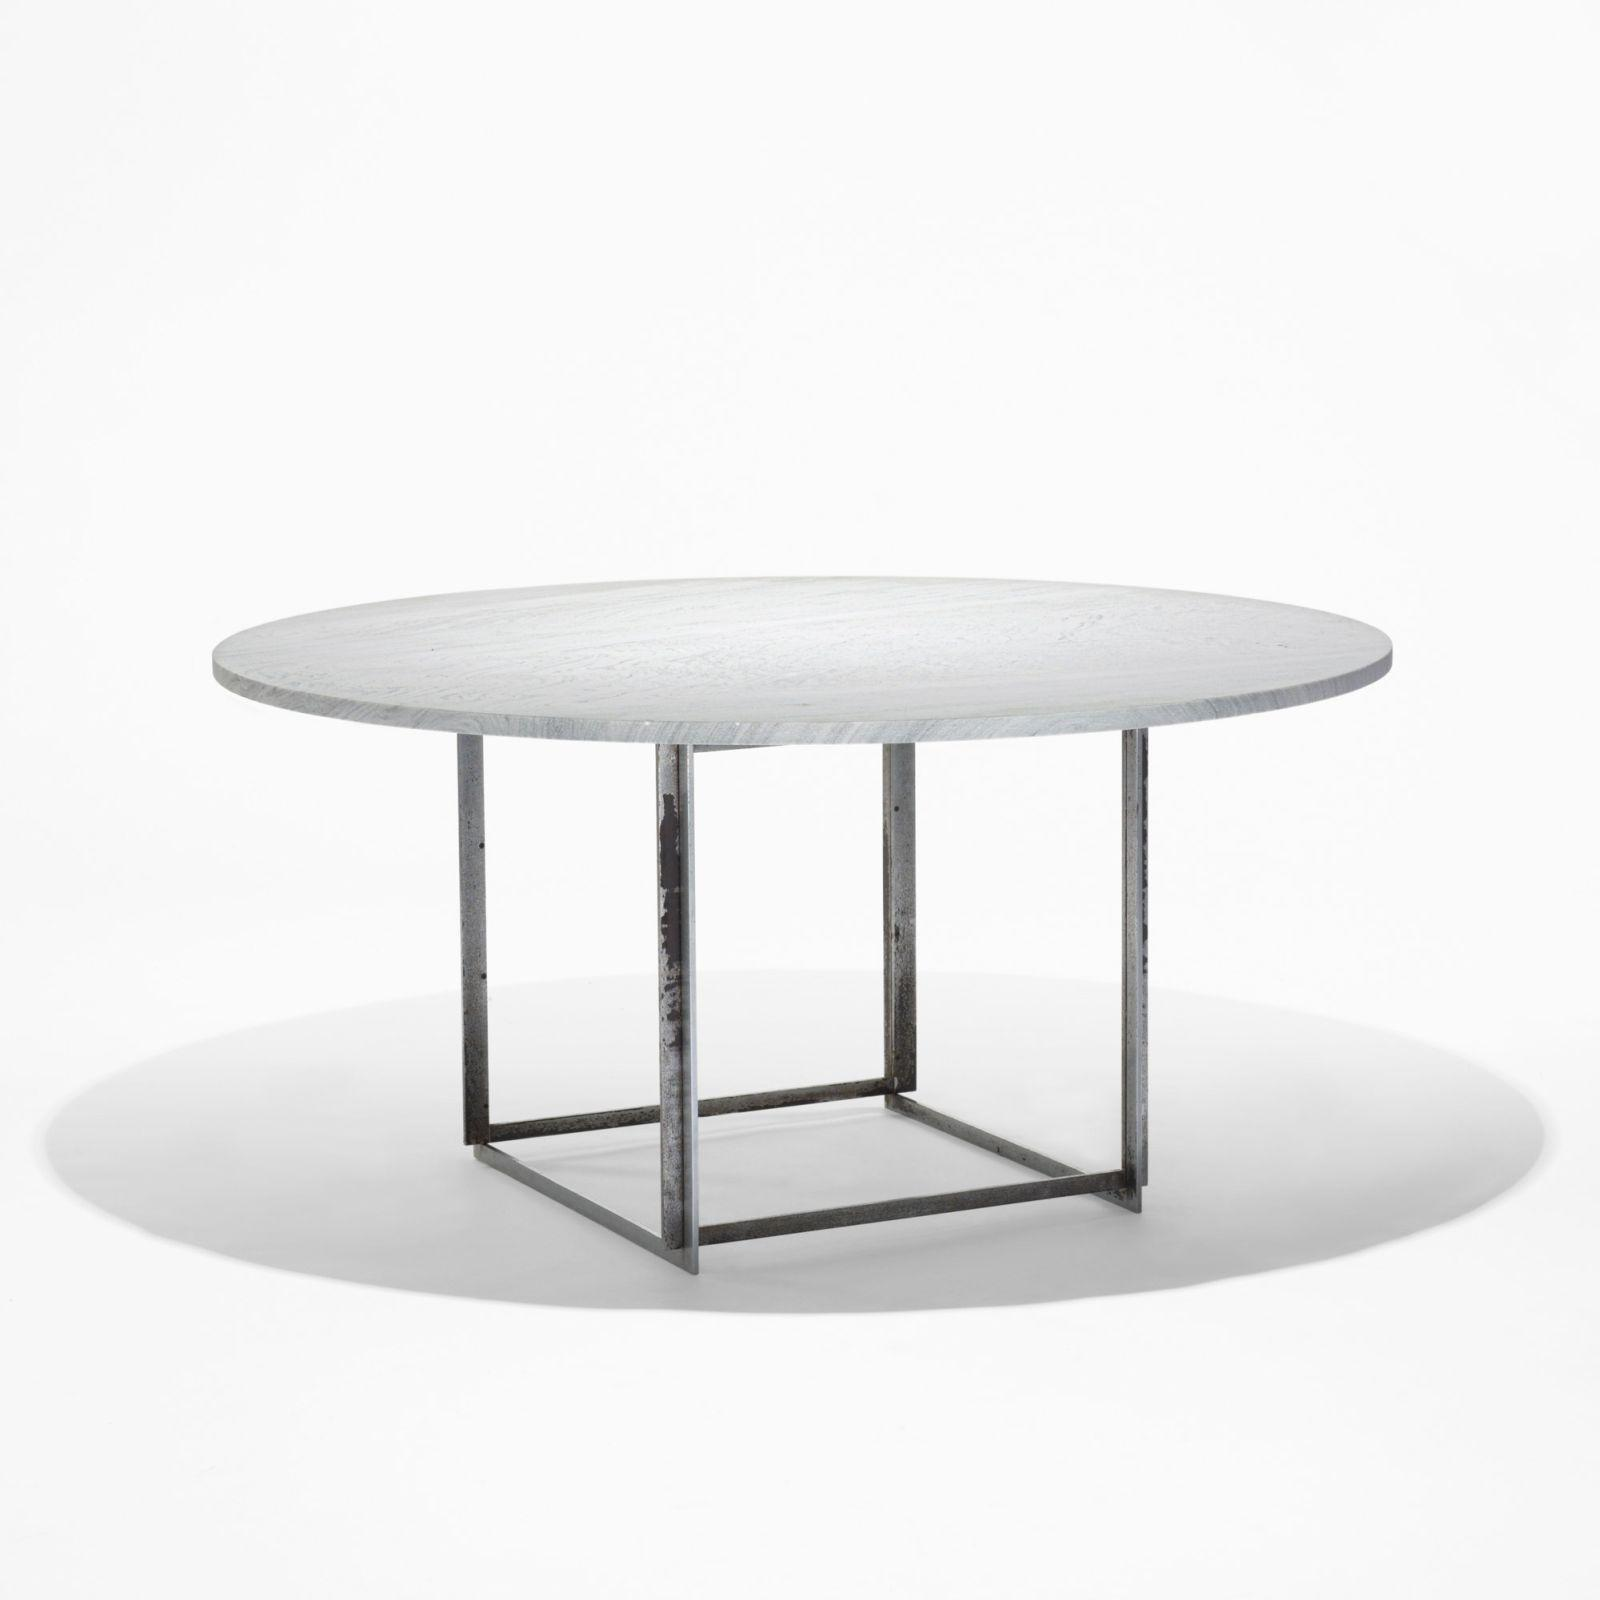 furniture poul kjaerholm pk54. Furniture Poul Kjaerholm Pk54 T